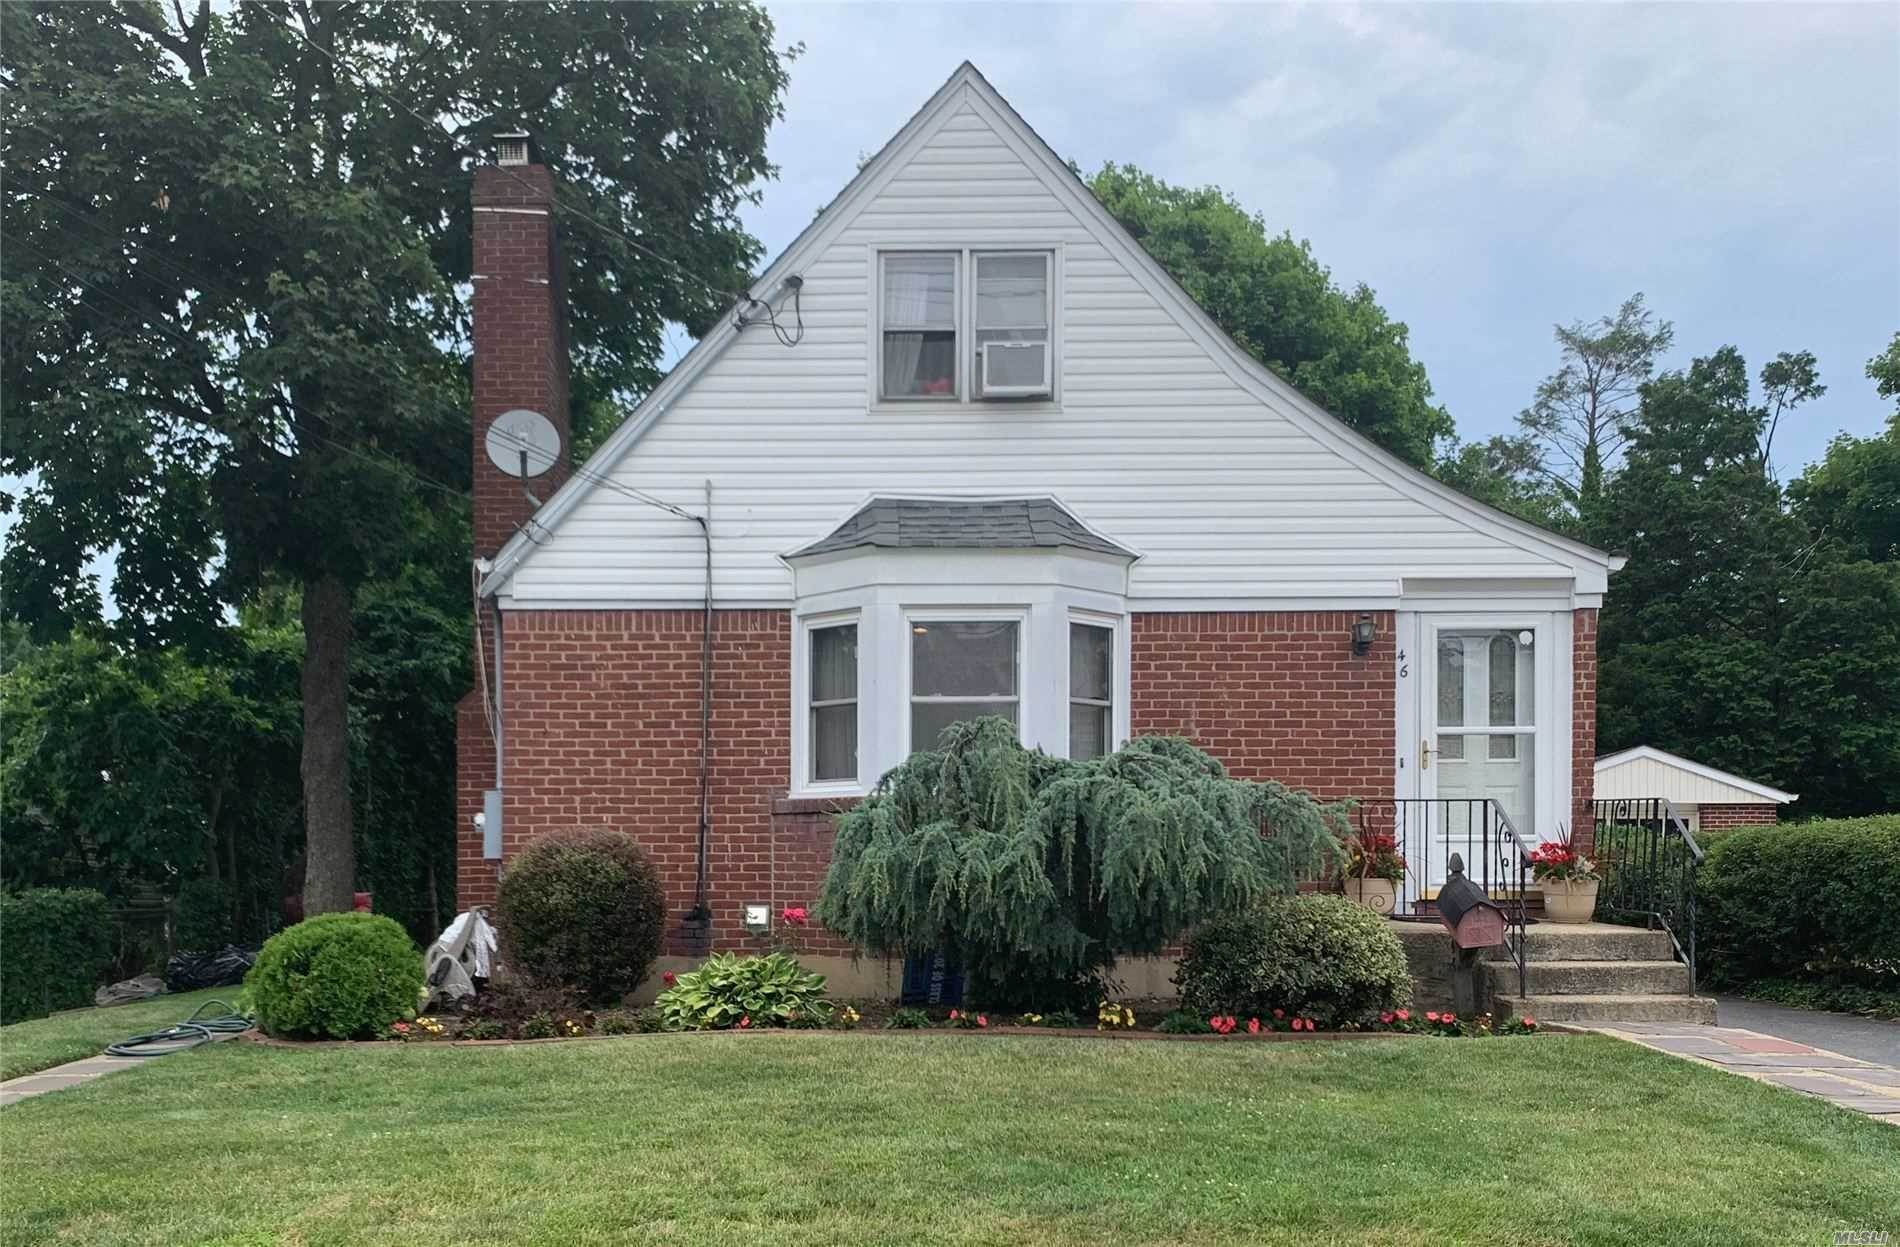 Residential for Sale at 46 Mckinley Avenue, Albertson, NY 11507 Albertson, New York 11507 United States